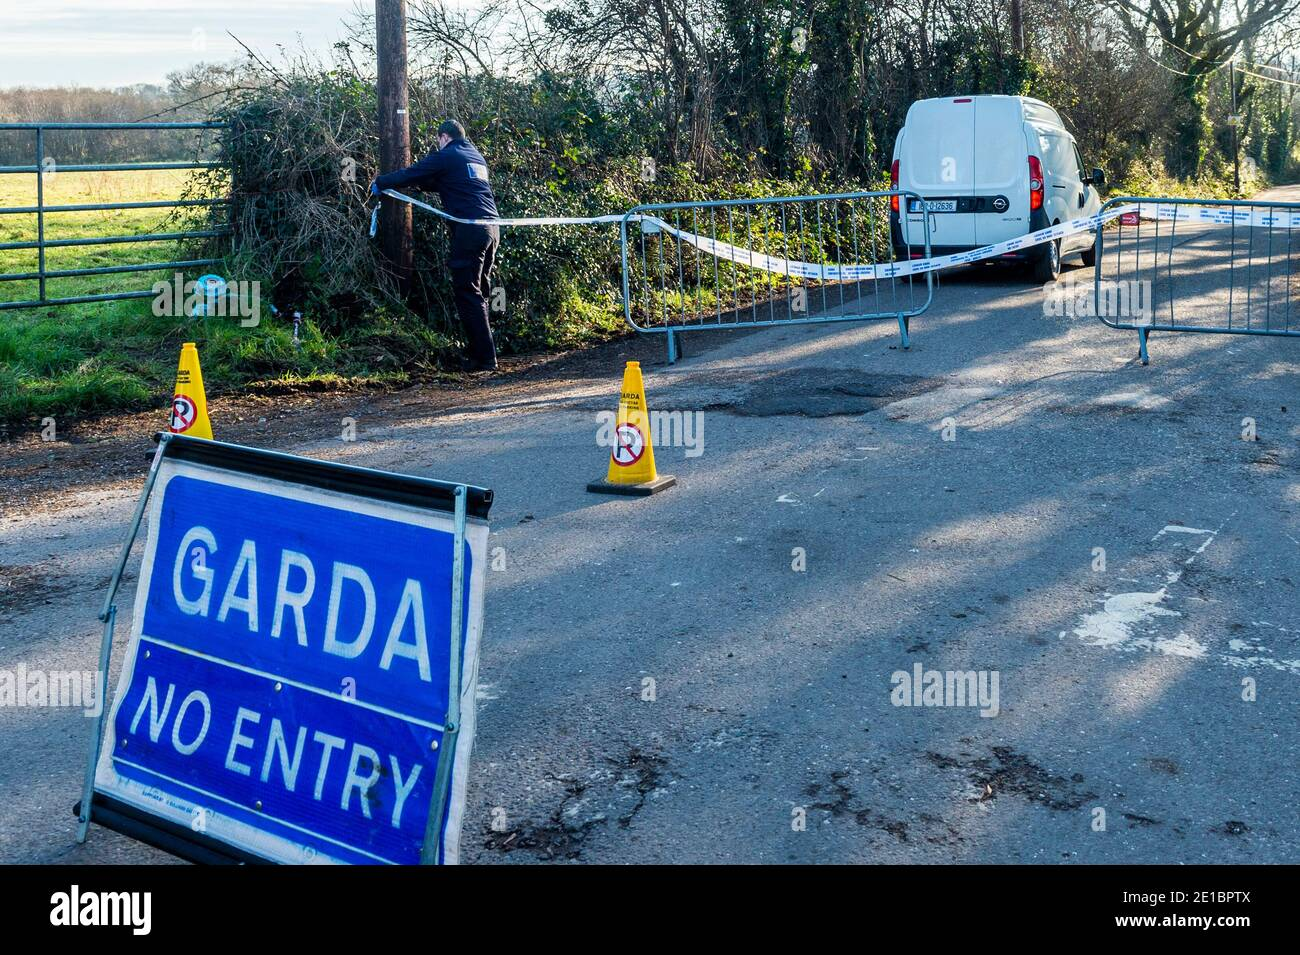 midleton-county-cork-ireland-6th-jan-2021-skeletal-remains-were-found-on-the-midleton-to-youghal-greenway-last-night-just-outside-midleton-gardai-have-the-road-leading-to-the-discovery-sealed-off-a-garda-forensics-officer-arrives-at-the-scene-the-pathologist-is-due-to-examine-the-remains-this-afternoon-credit-ag-newsalamy-live-news-2E1BPTX.jpg